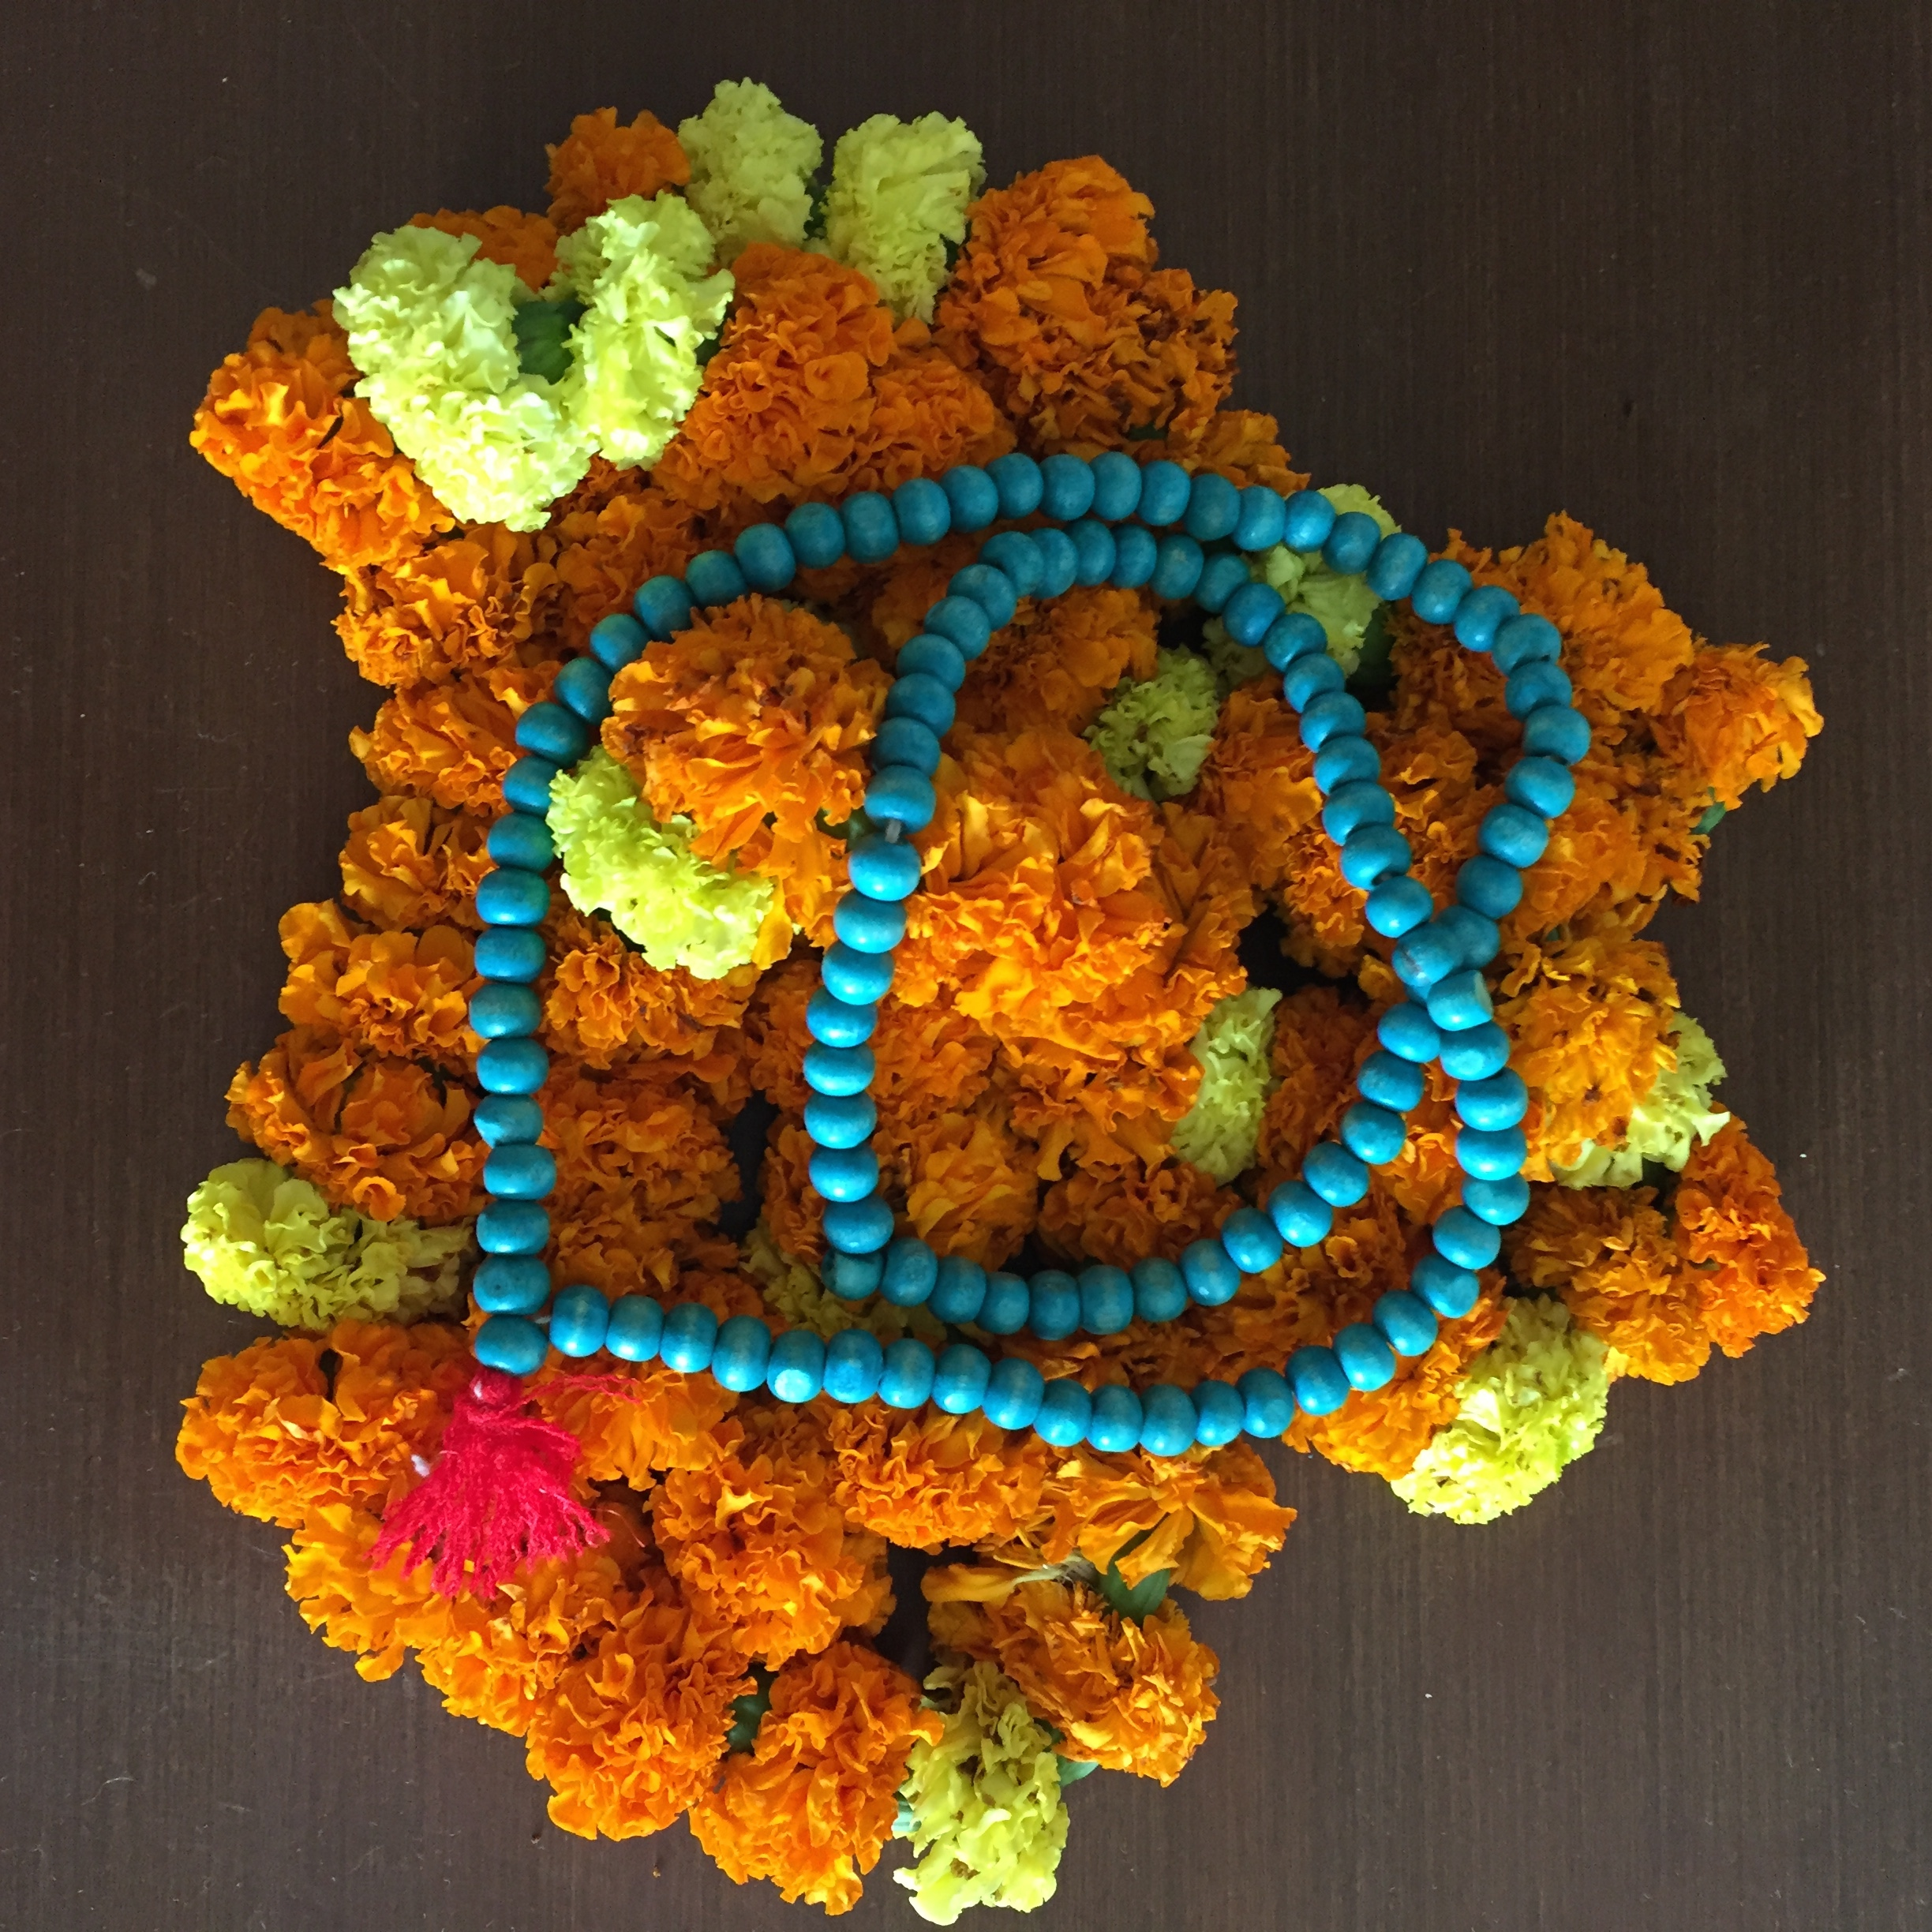 marigolds and prayer beads - photo credit - Karen Anderson - @savouritall